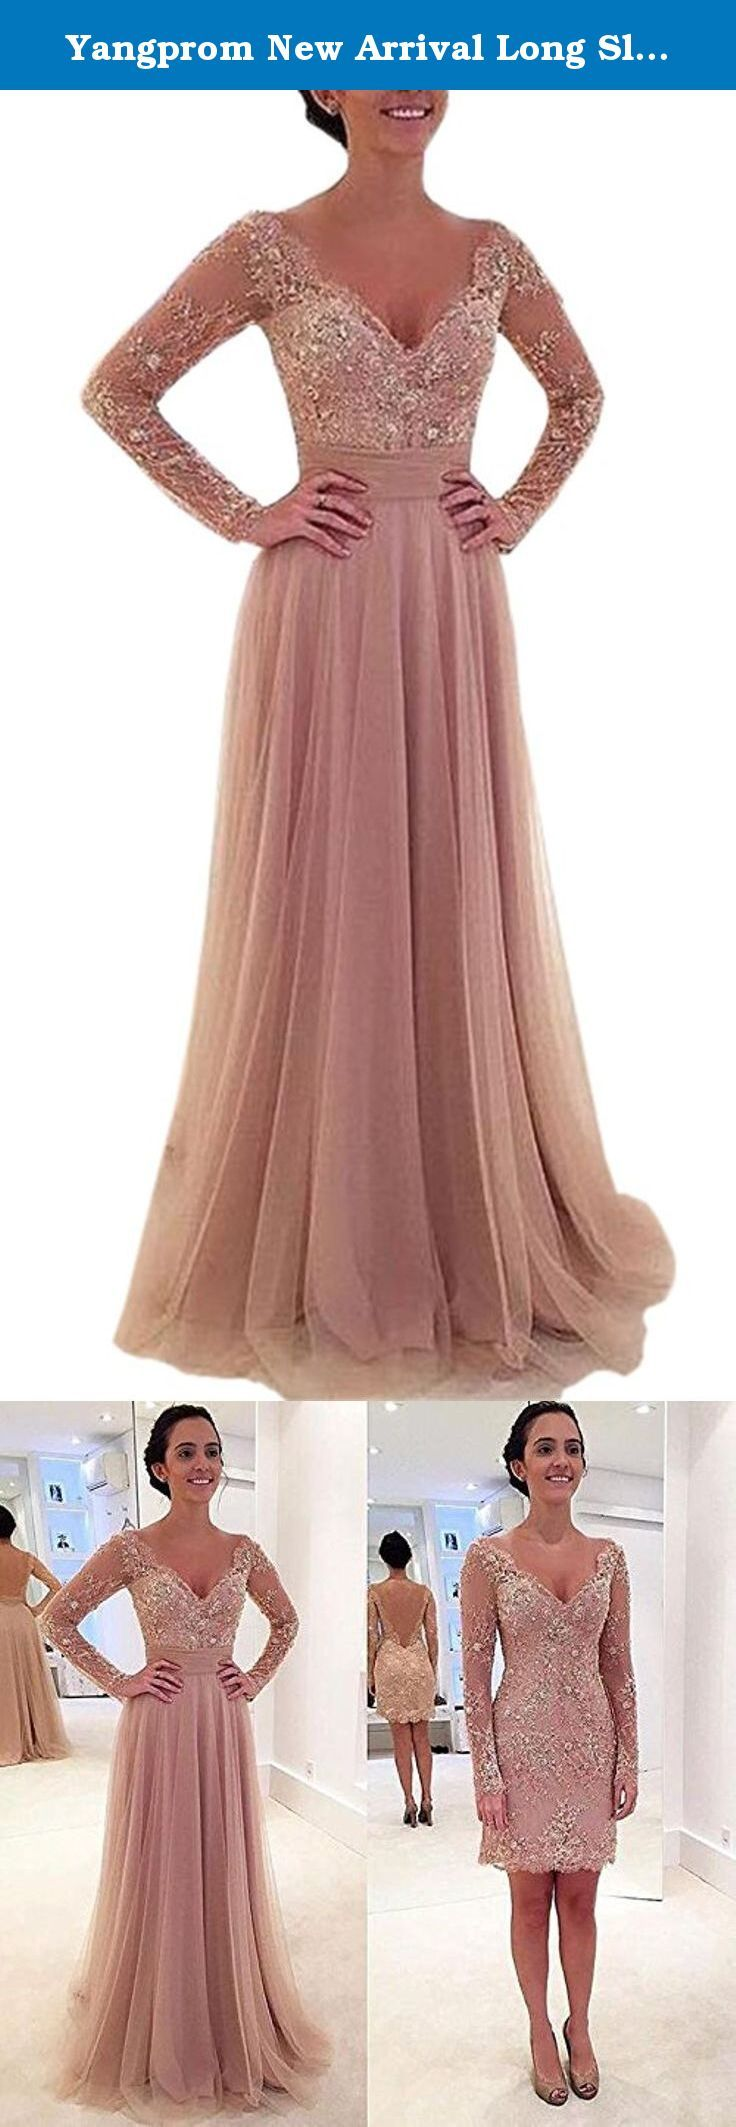 Yangprom new arrival long sleeve crystal prom dress with detachable